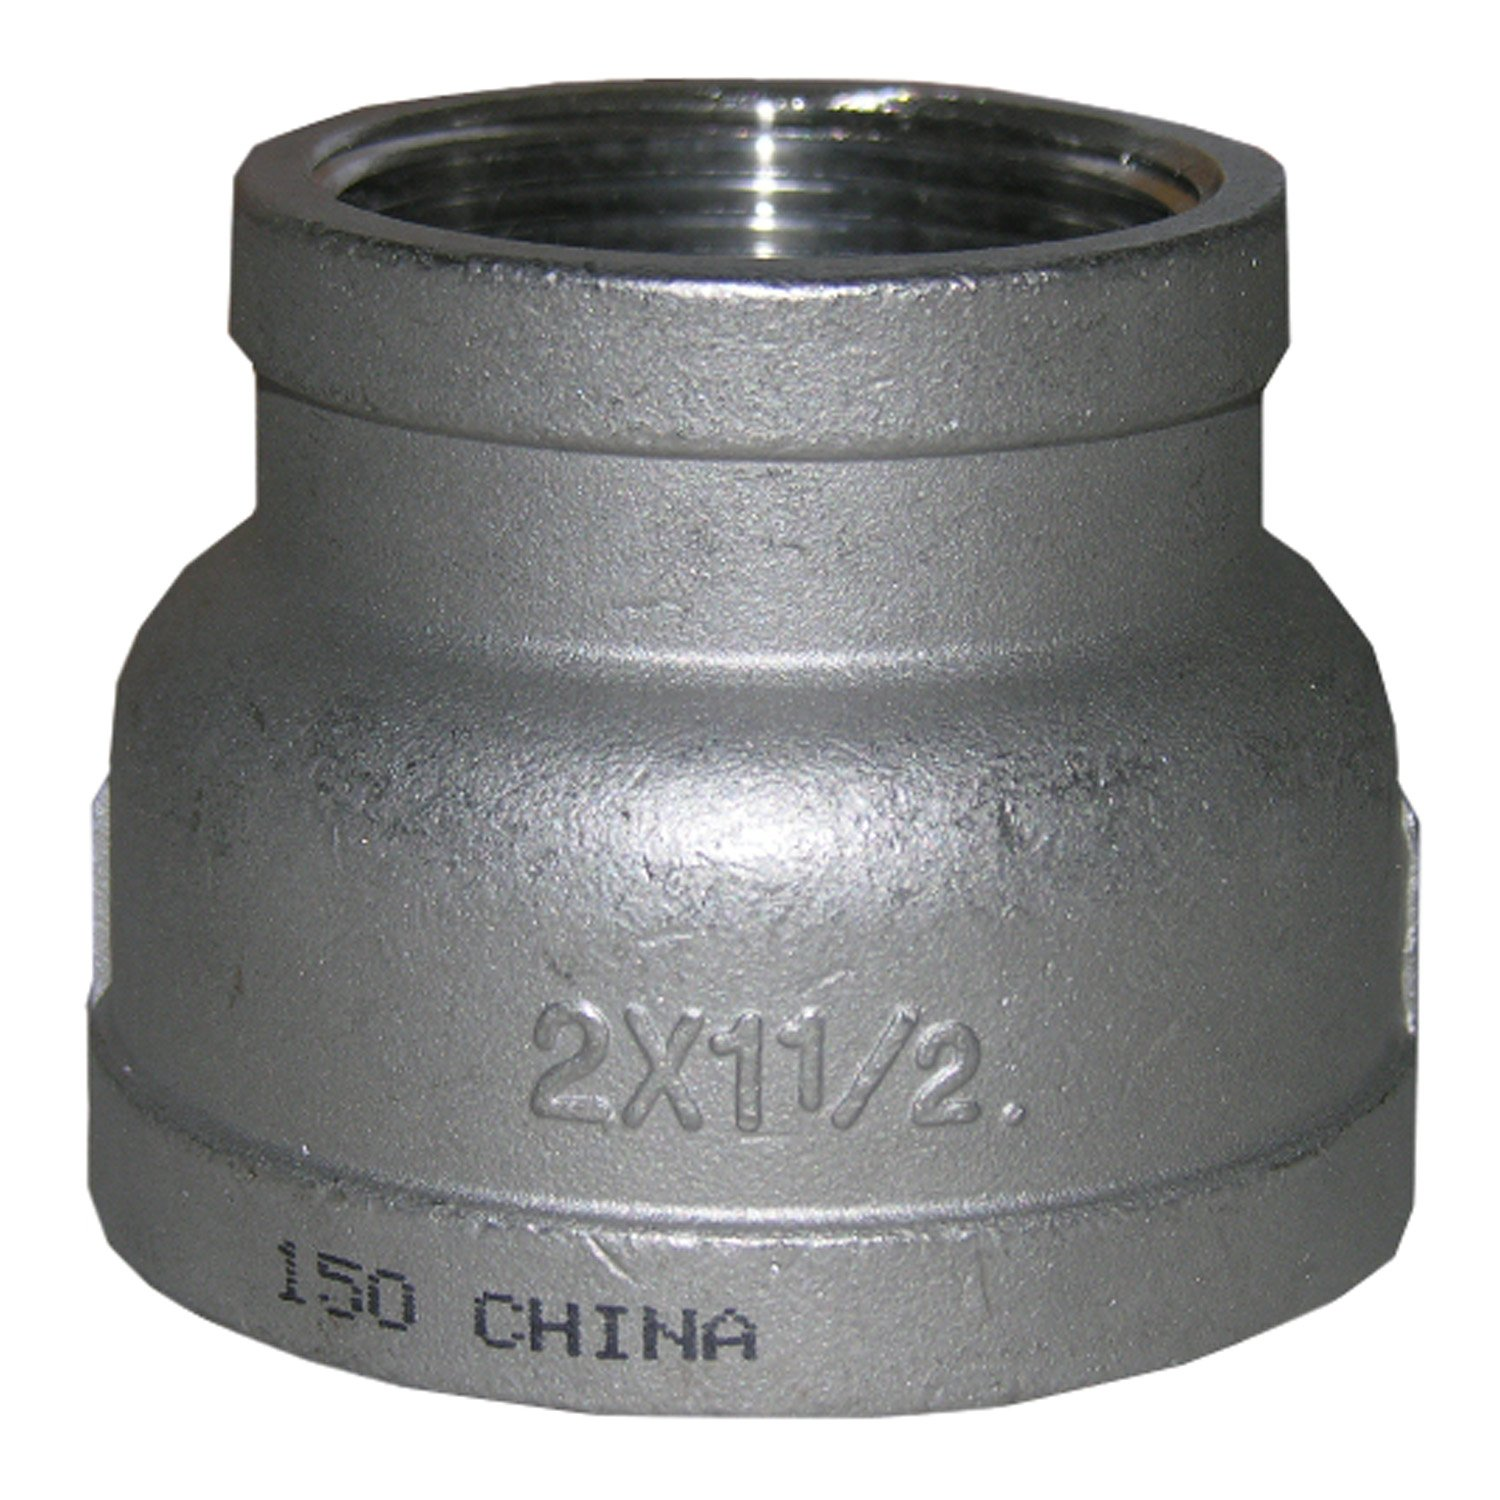 LASCO 32-2814 Stainless Steel Bell Reducer with 2-Inch Female Pipe Thread and 1 1//2-Inch Female Pipe Thread